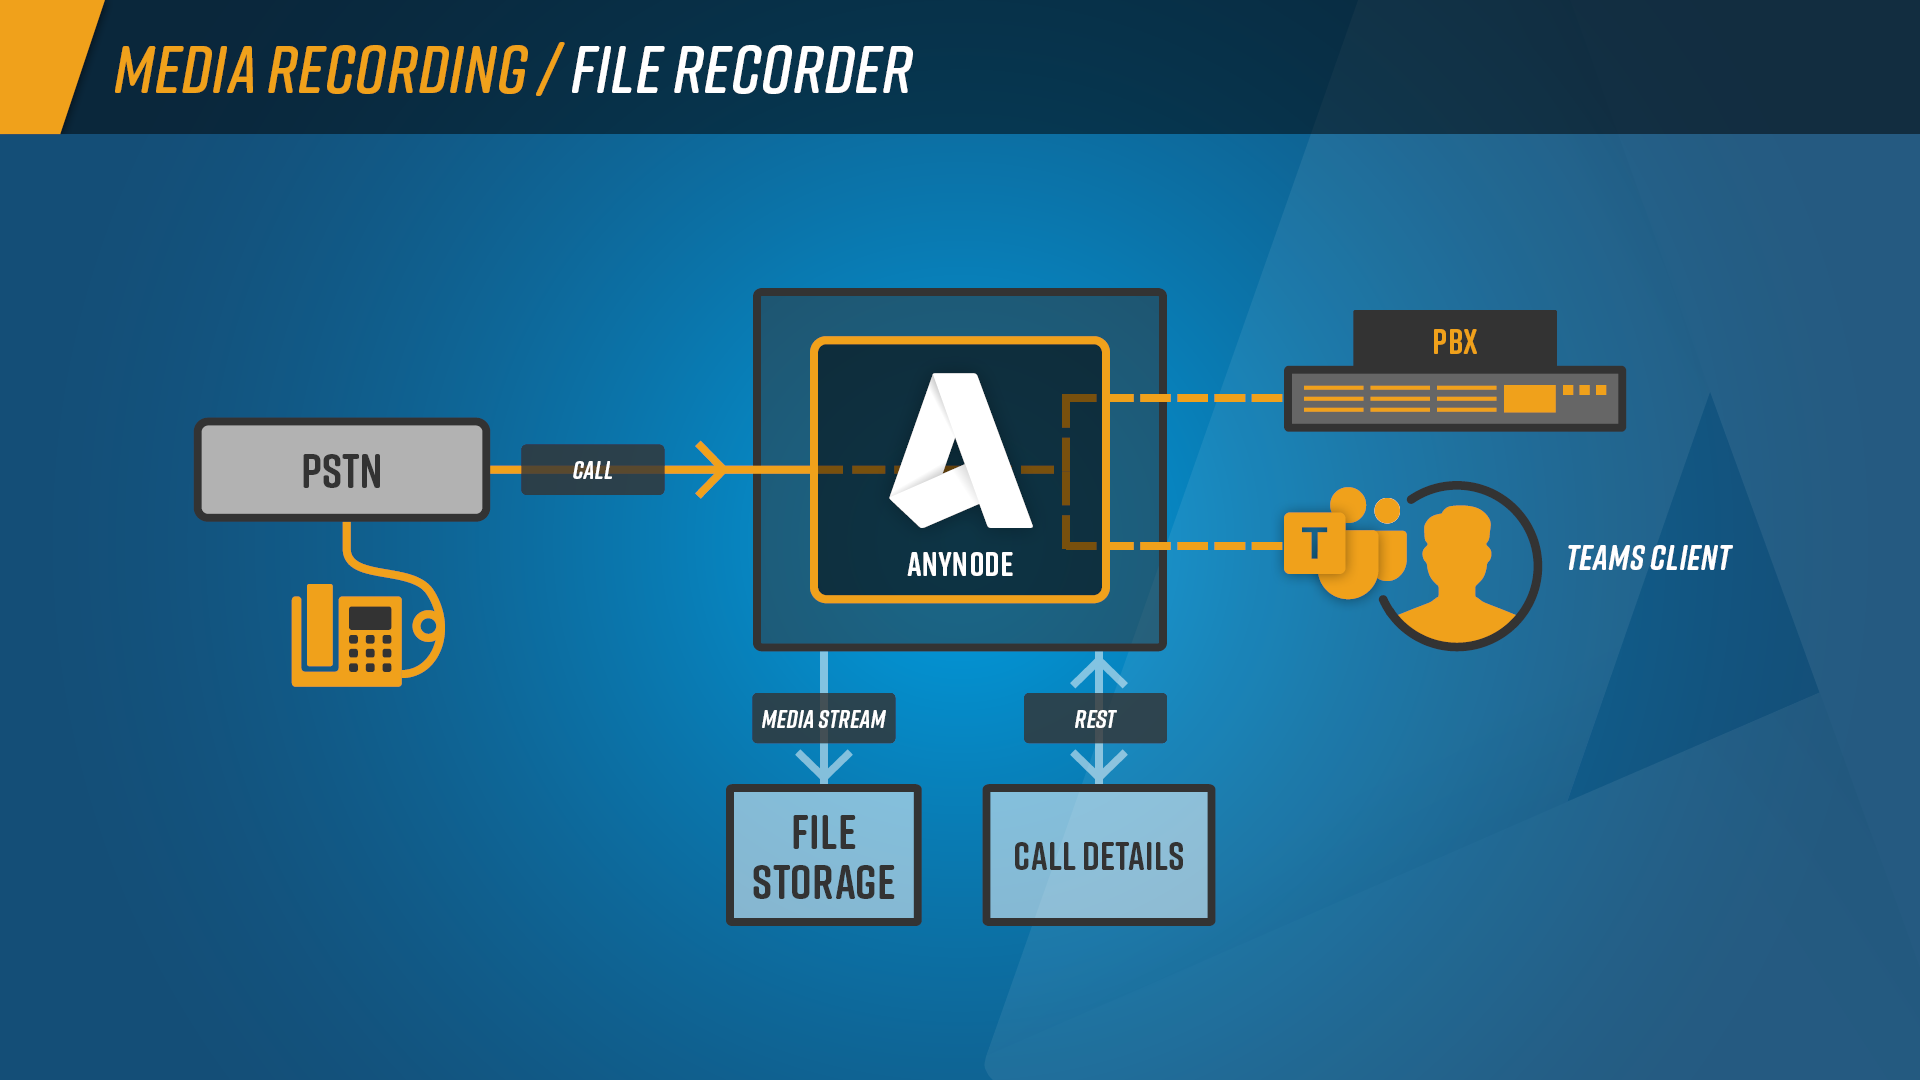 Features_Media_Recording_Graph_File_Recorder